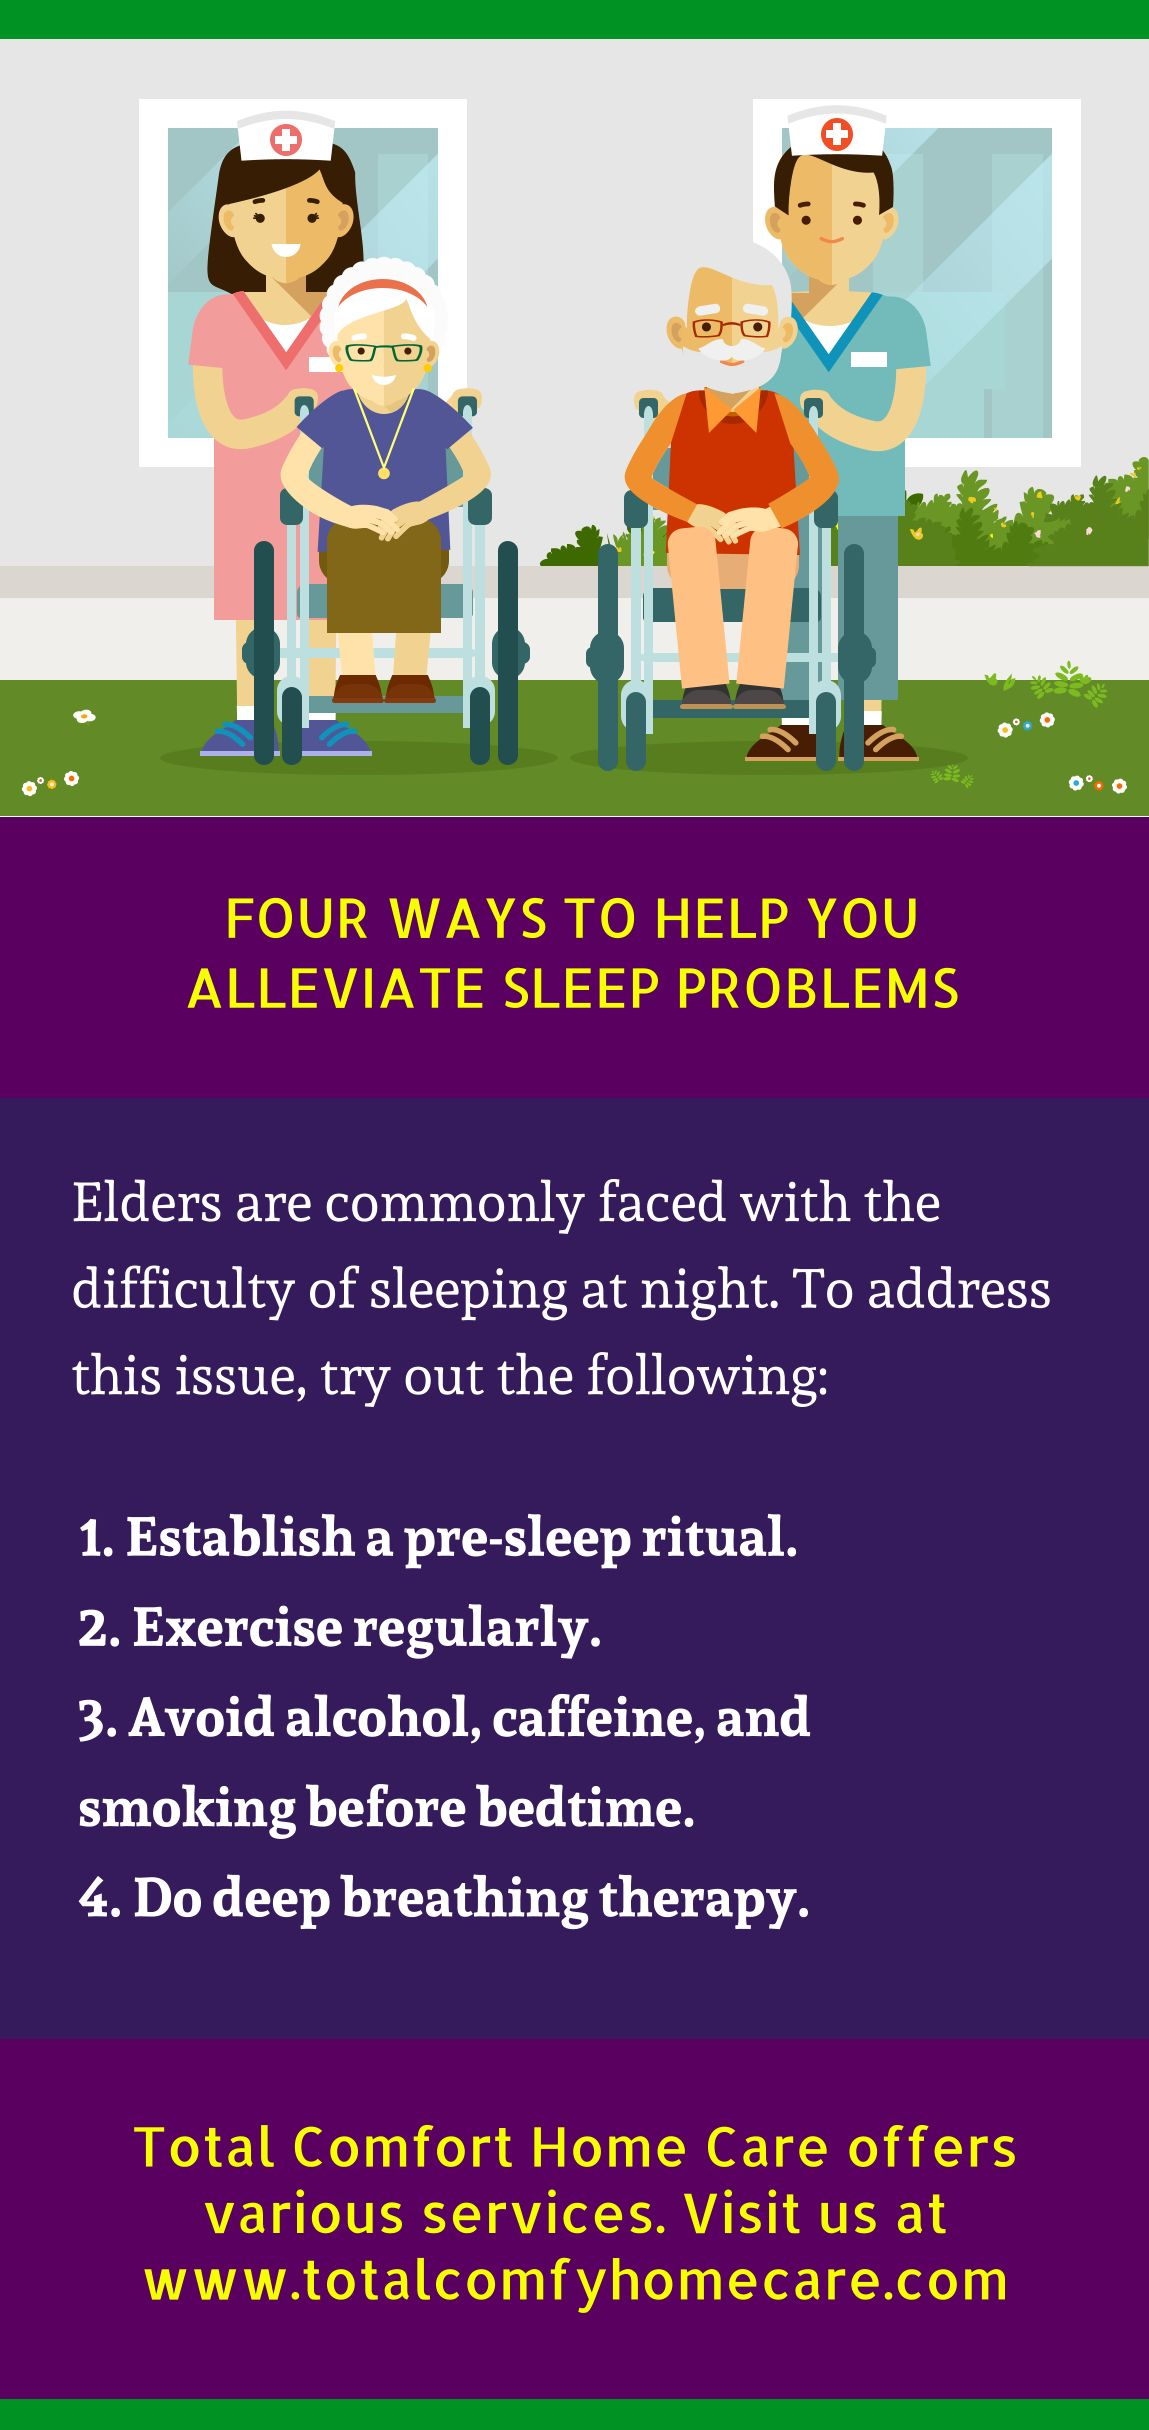 What are the ways to help alleviate sleep problems? Find